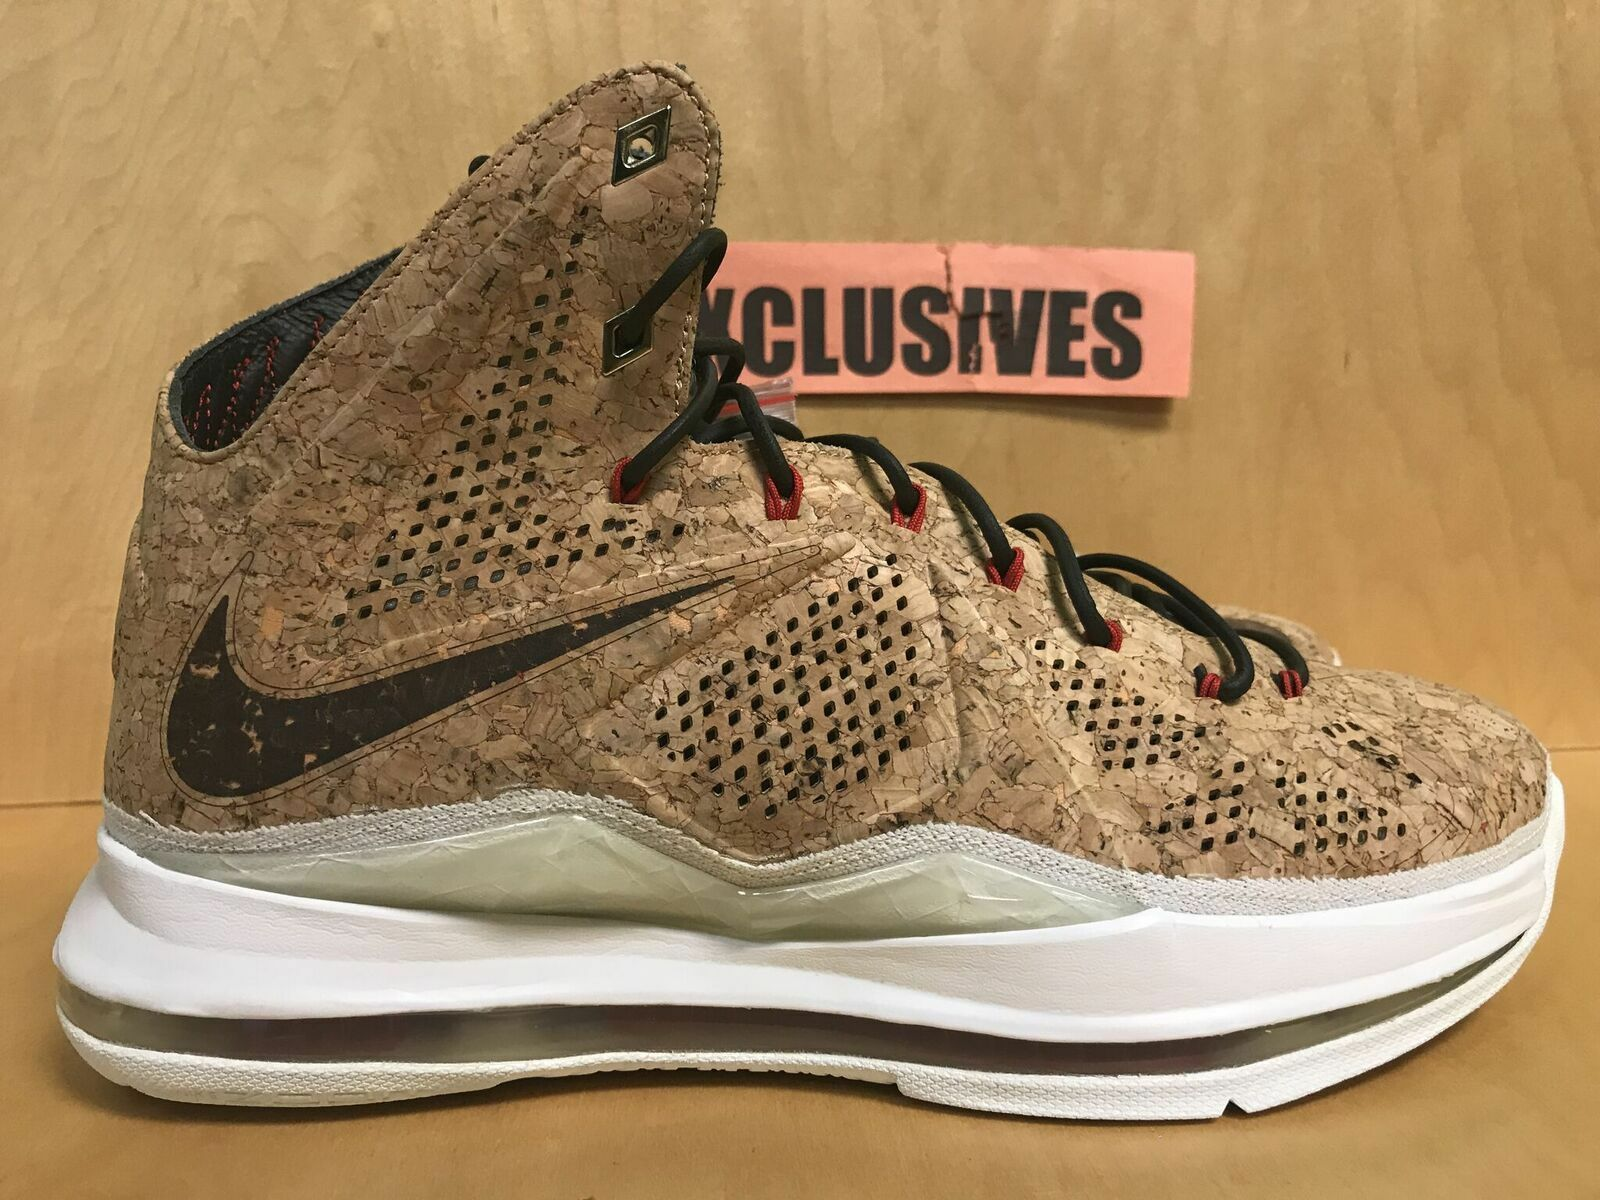 Nike Air Lebron X 10 Cork QS 2013 Classic Brown 580890 200 Very Limited Size 10